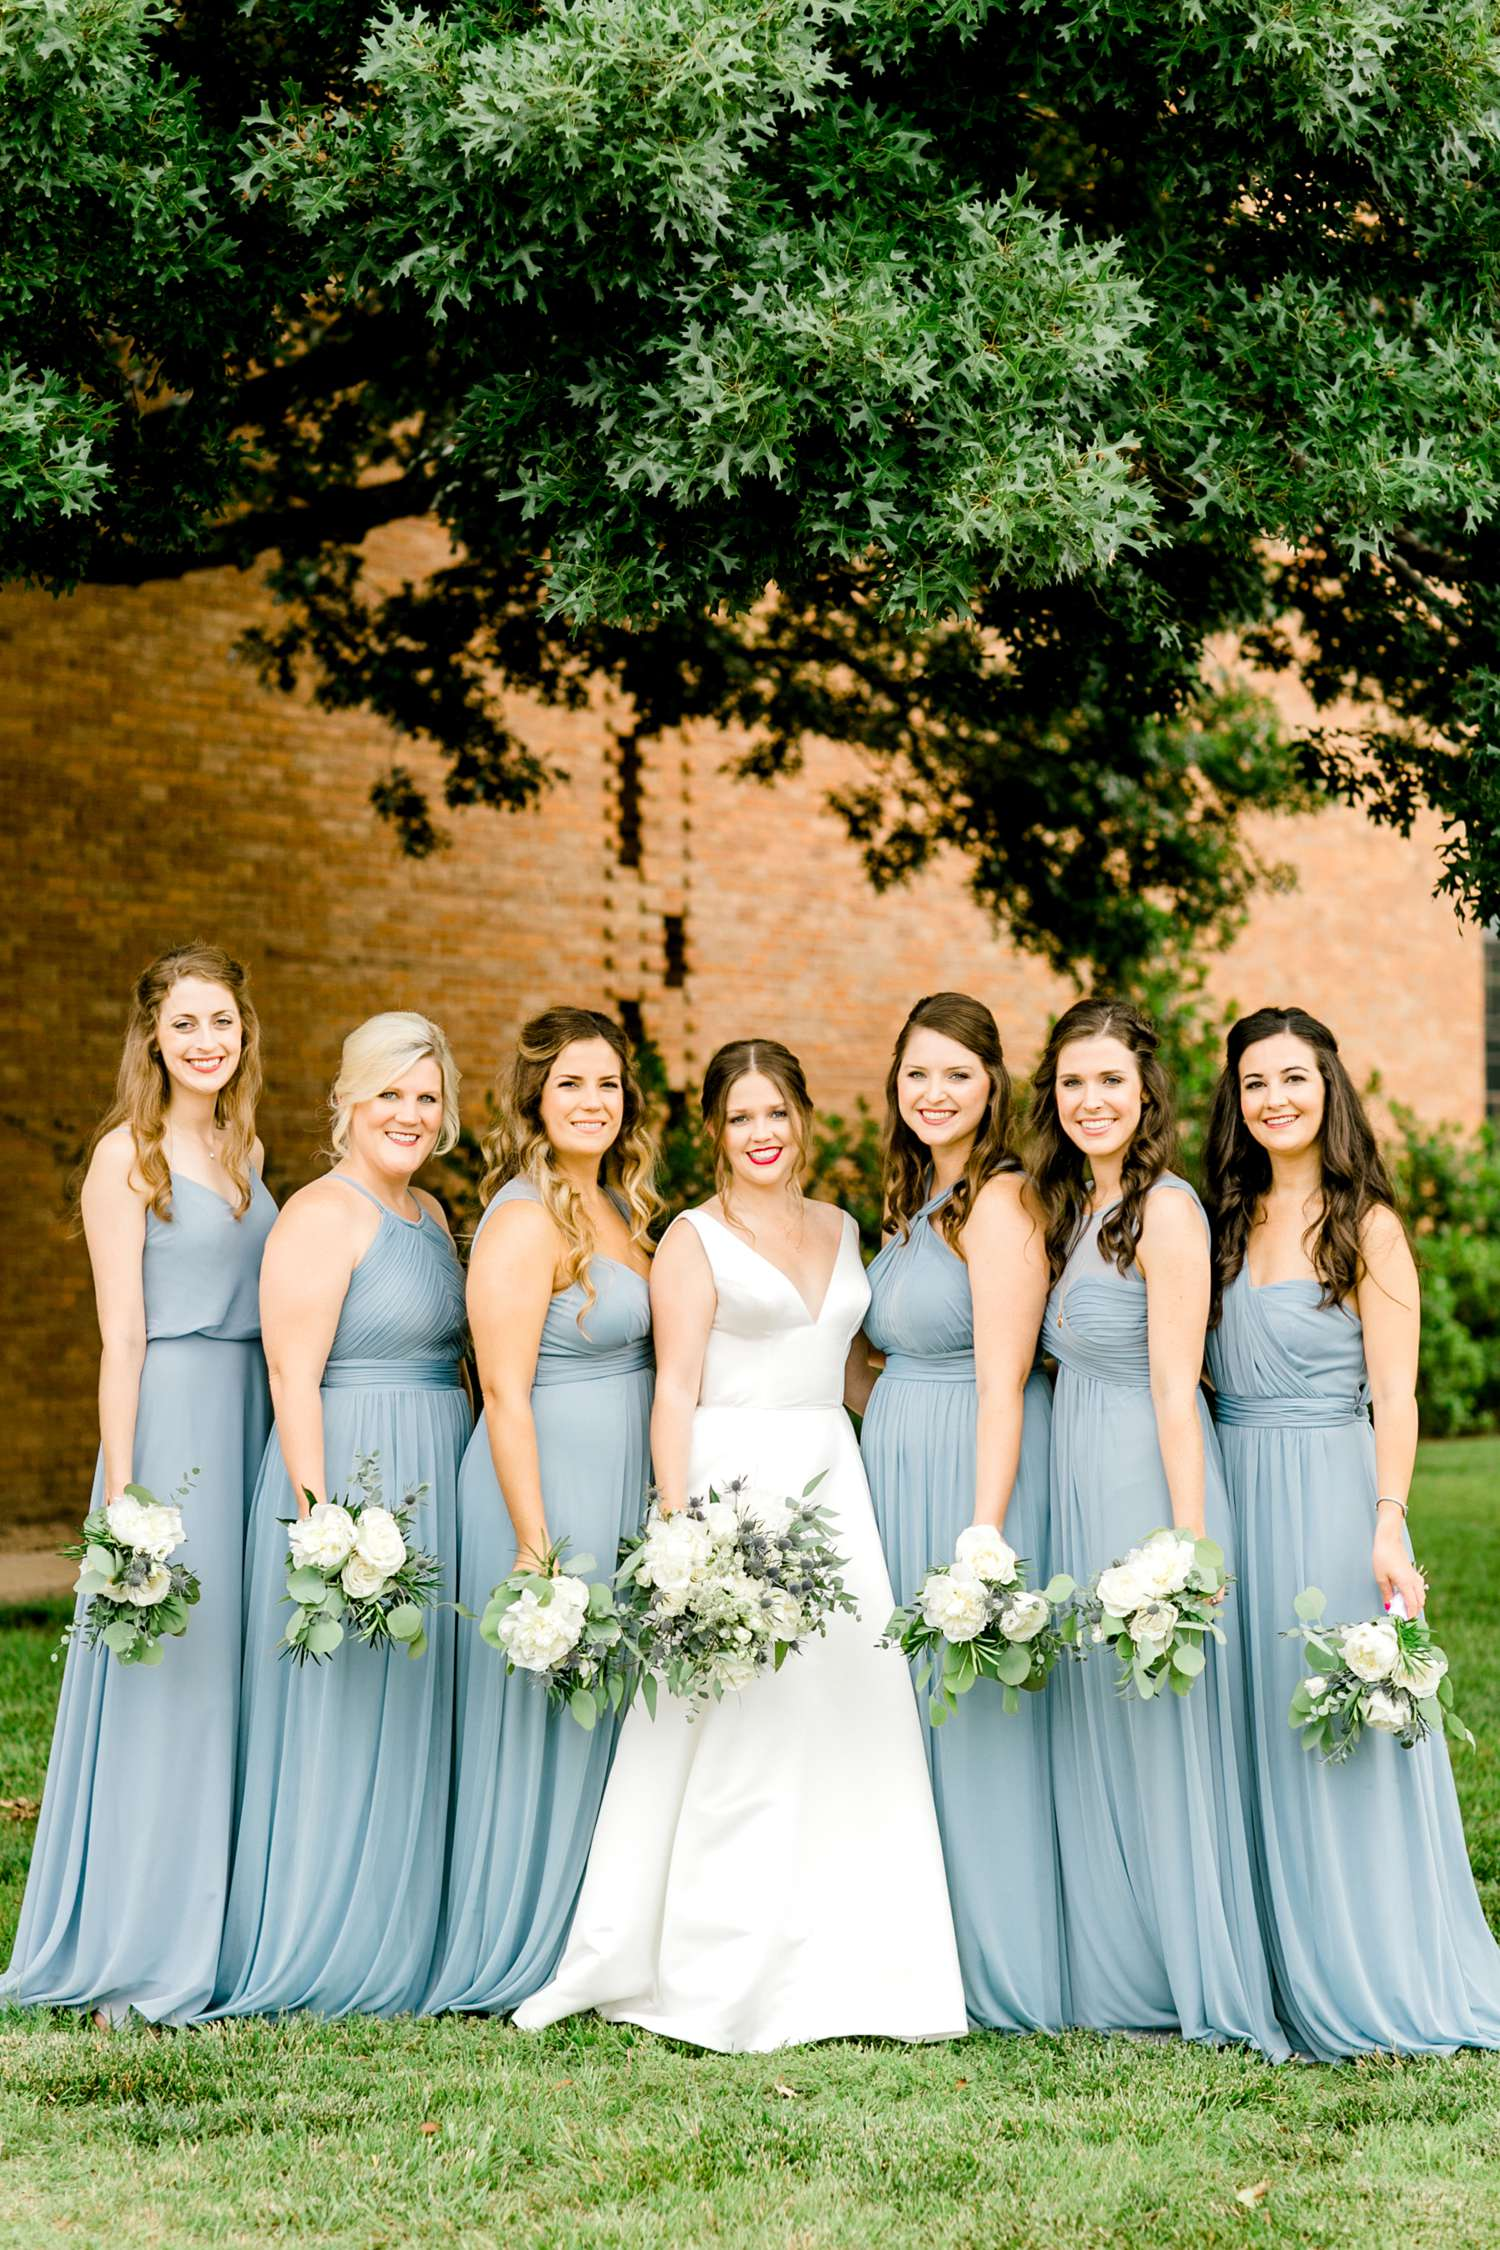 HANNAH+CRAIG+CHILDS+TEXAS+TECH+WEDDING+ALLEEJ+LUBBOCK+PHOTOGRAPHER_0019.jpg